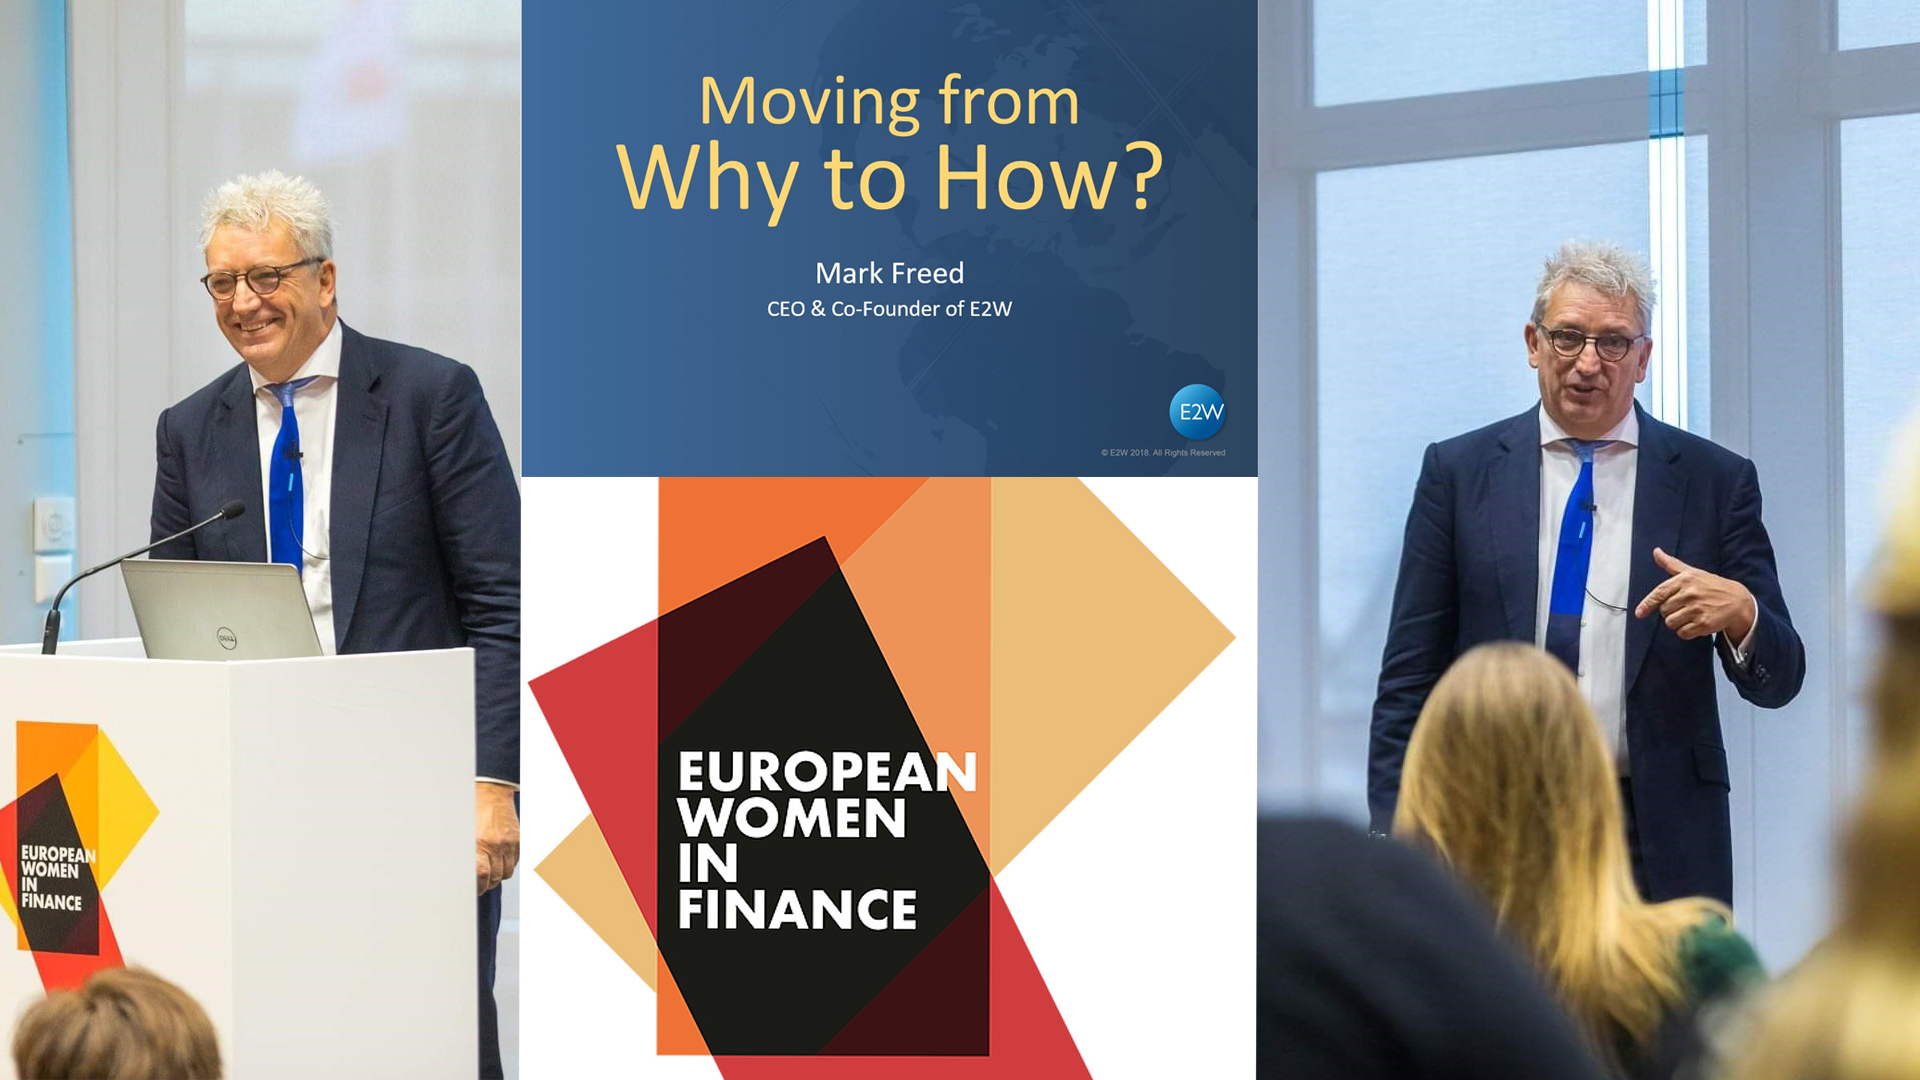 European Women in Finance - Moving from Why to How?